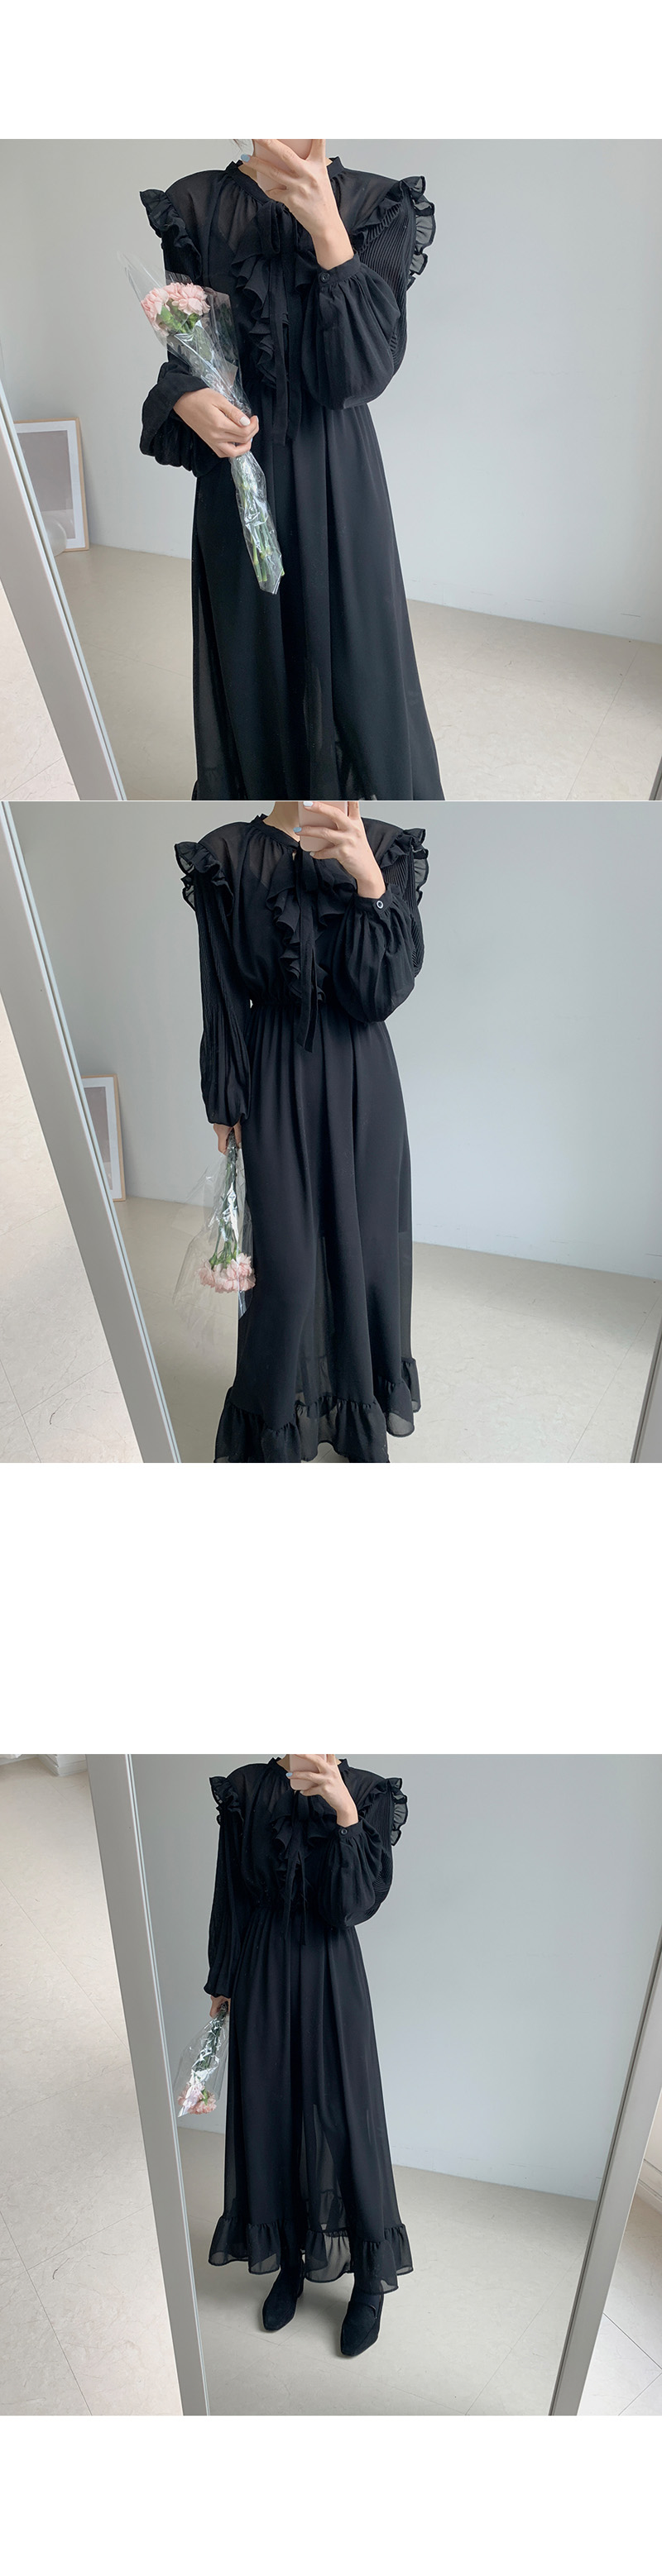 H47262d950bb64ccfa3a8b223c3b90703f - Autumn O-Neck Long Sleeves Chiffon Ruffles Maxi Dress